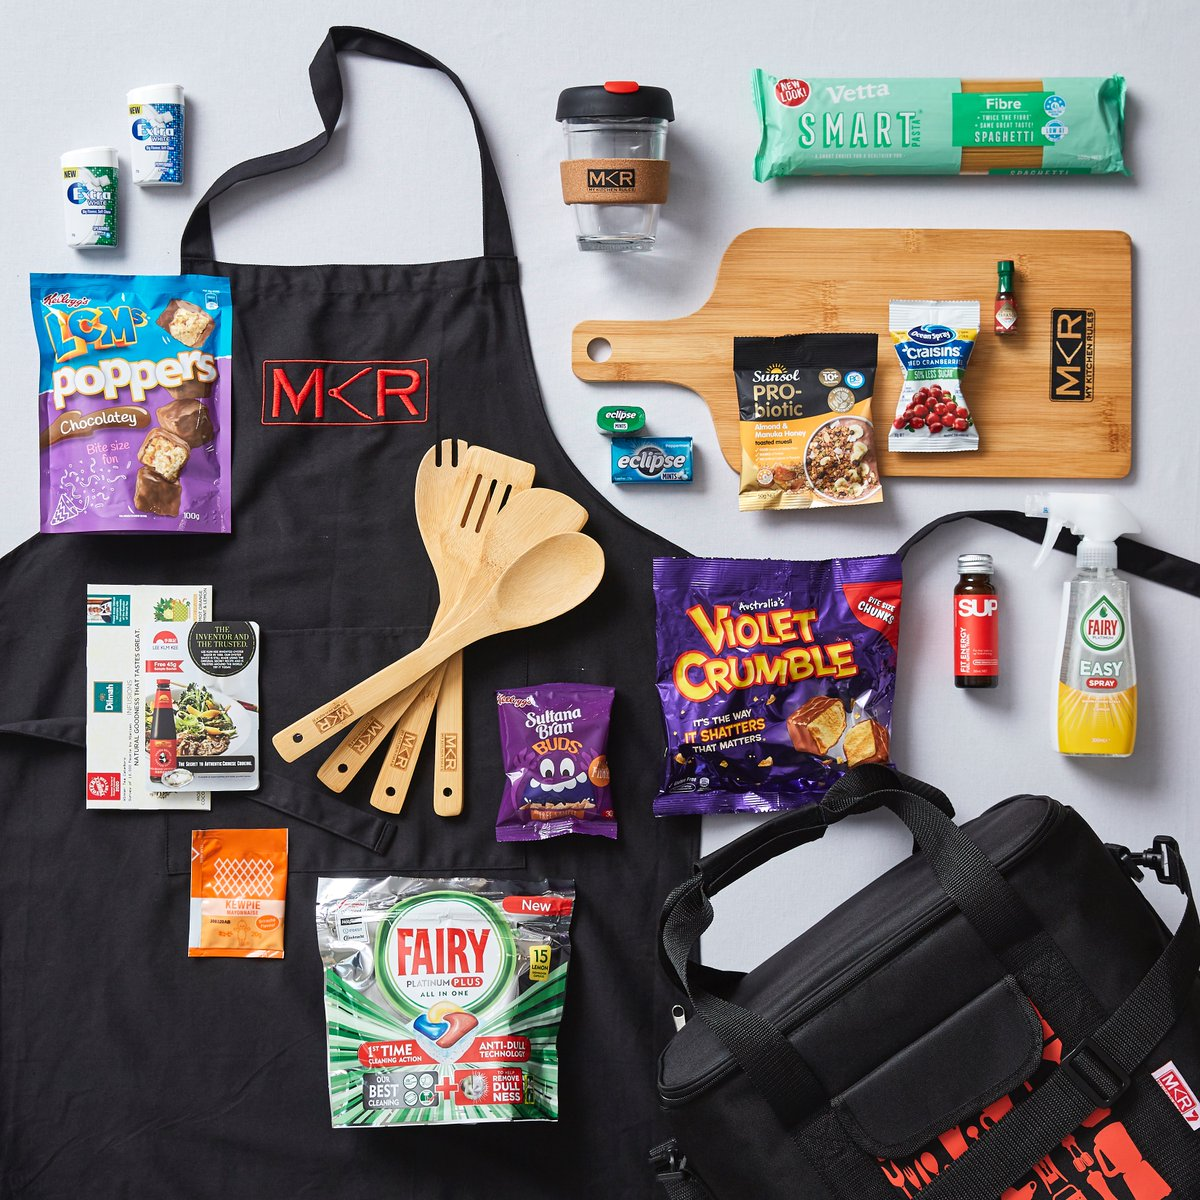 Getting your hands on an official #MKR Show Bag has never been easier! 🙌  Check out the link in our bio to grab all your @mykitchenrules goodies. 😍💫  https://t.co/aPR7Lk3Odb https://t.co/LVCMdI5lsy